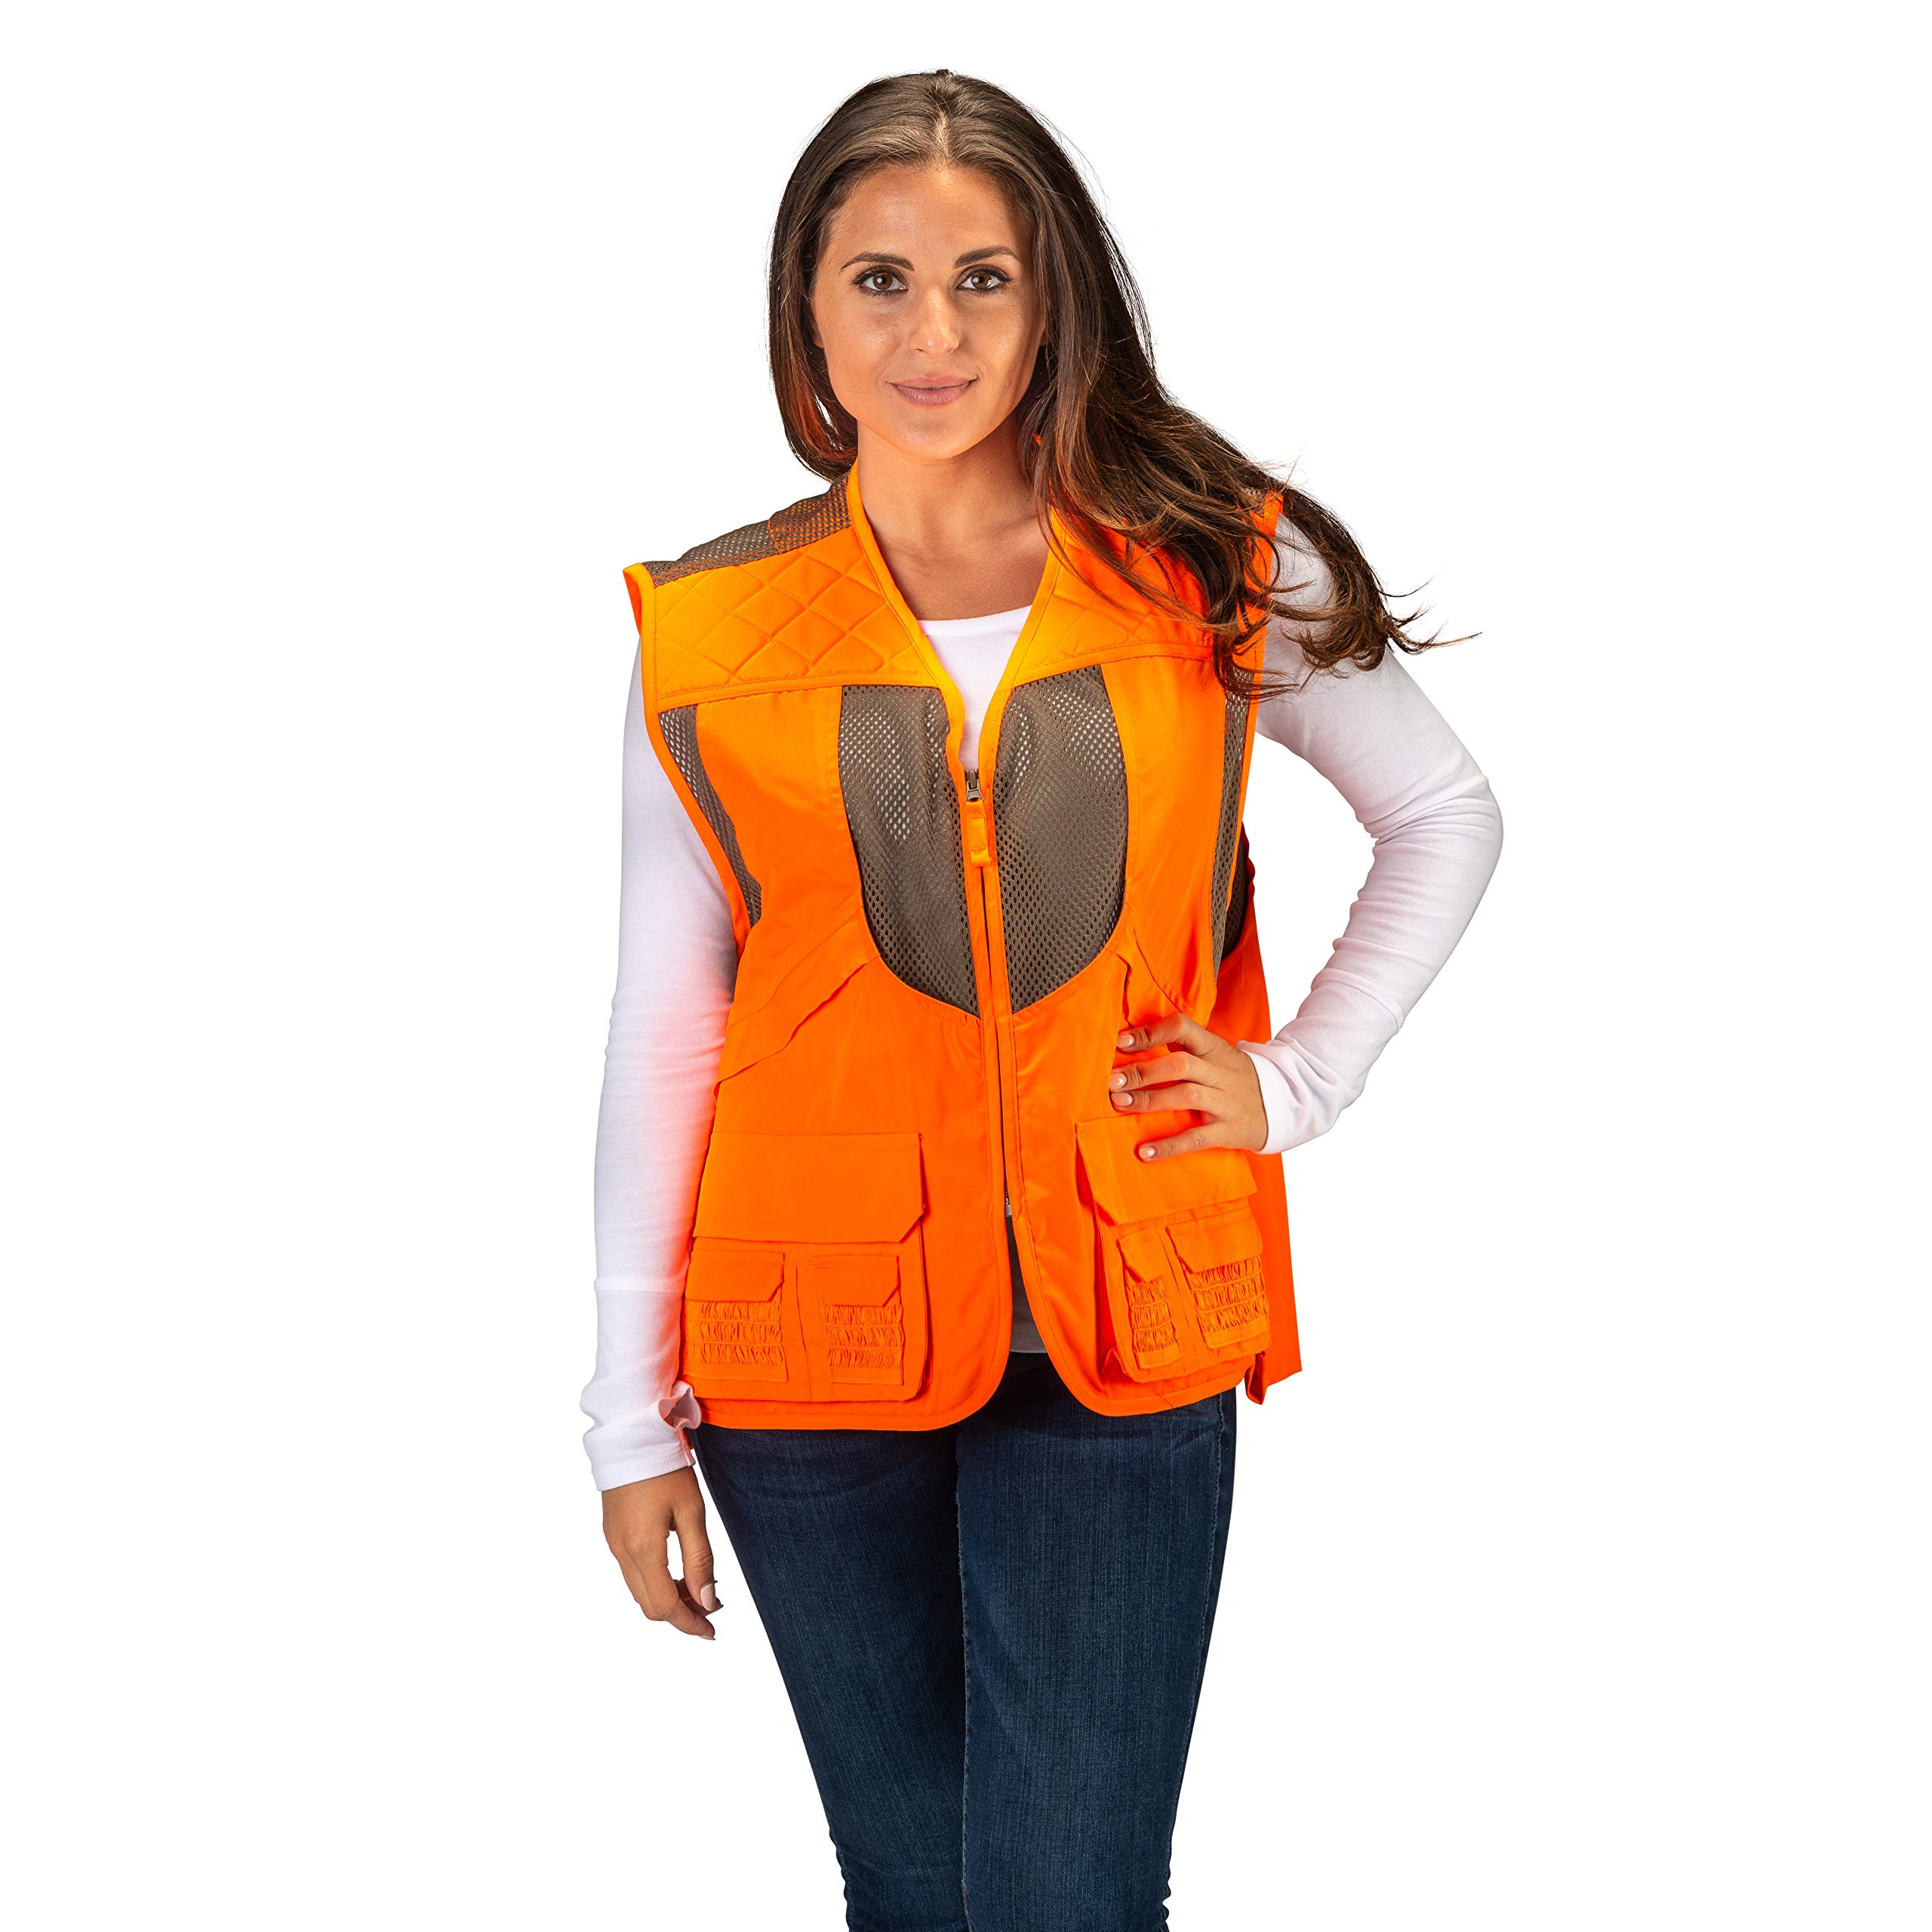 TrailCrest Mens Blaze Orange Safety Deluxe Front Loader Vest, 3X by TrailCrest (Image #3)